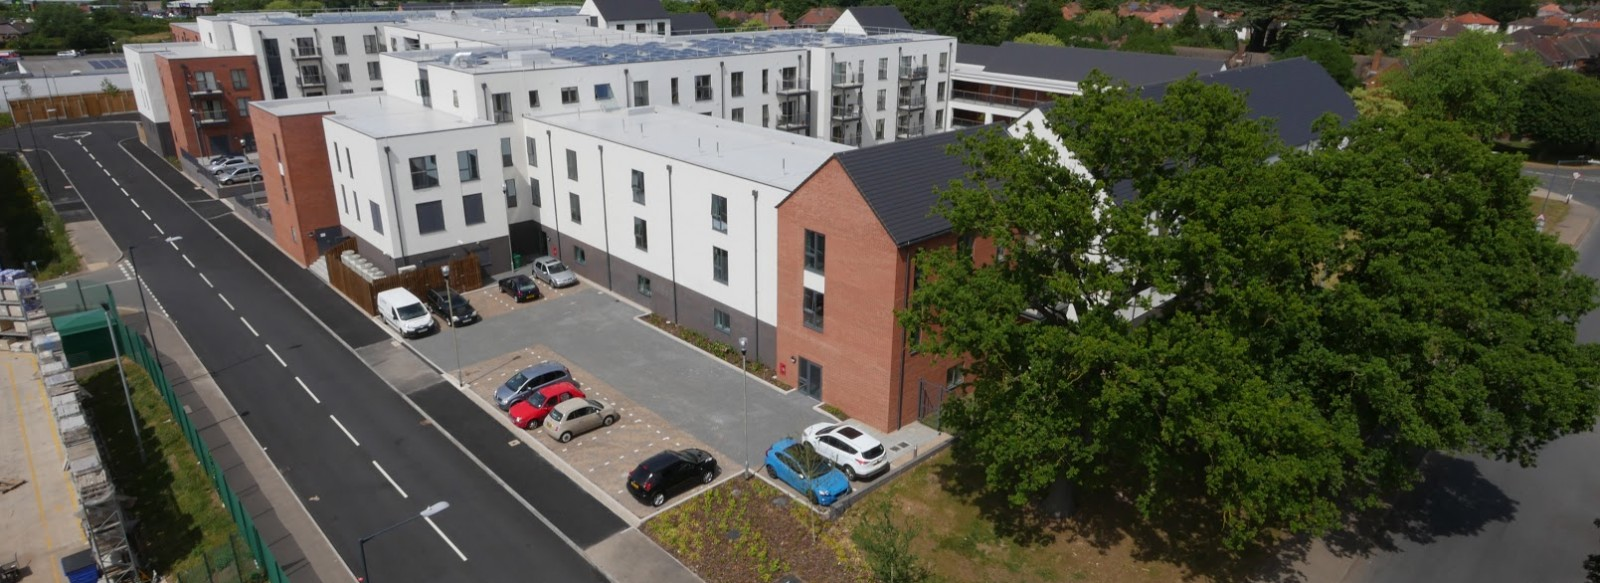 CWA Engineering - Orbit Extra Care - Structural & Civil Engineering